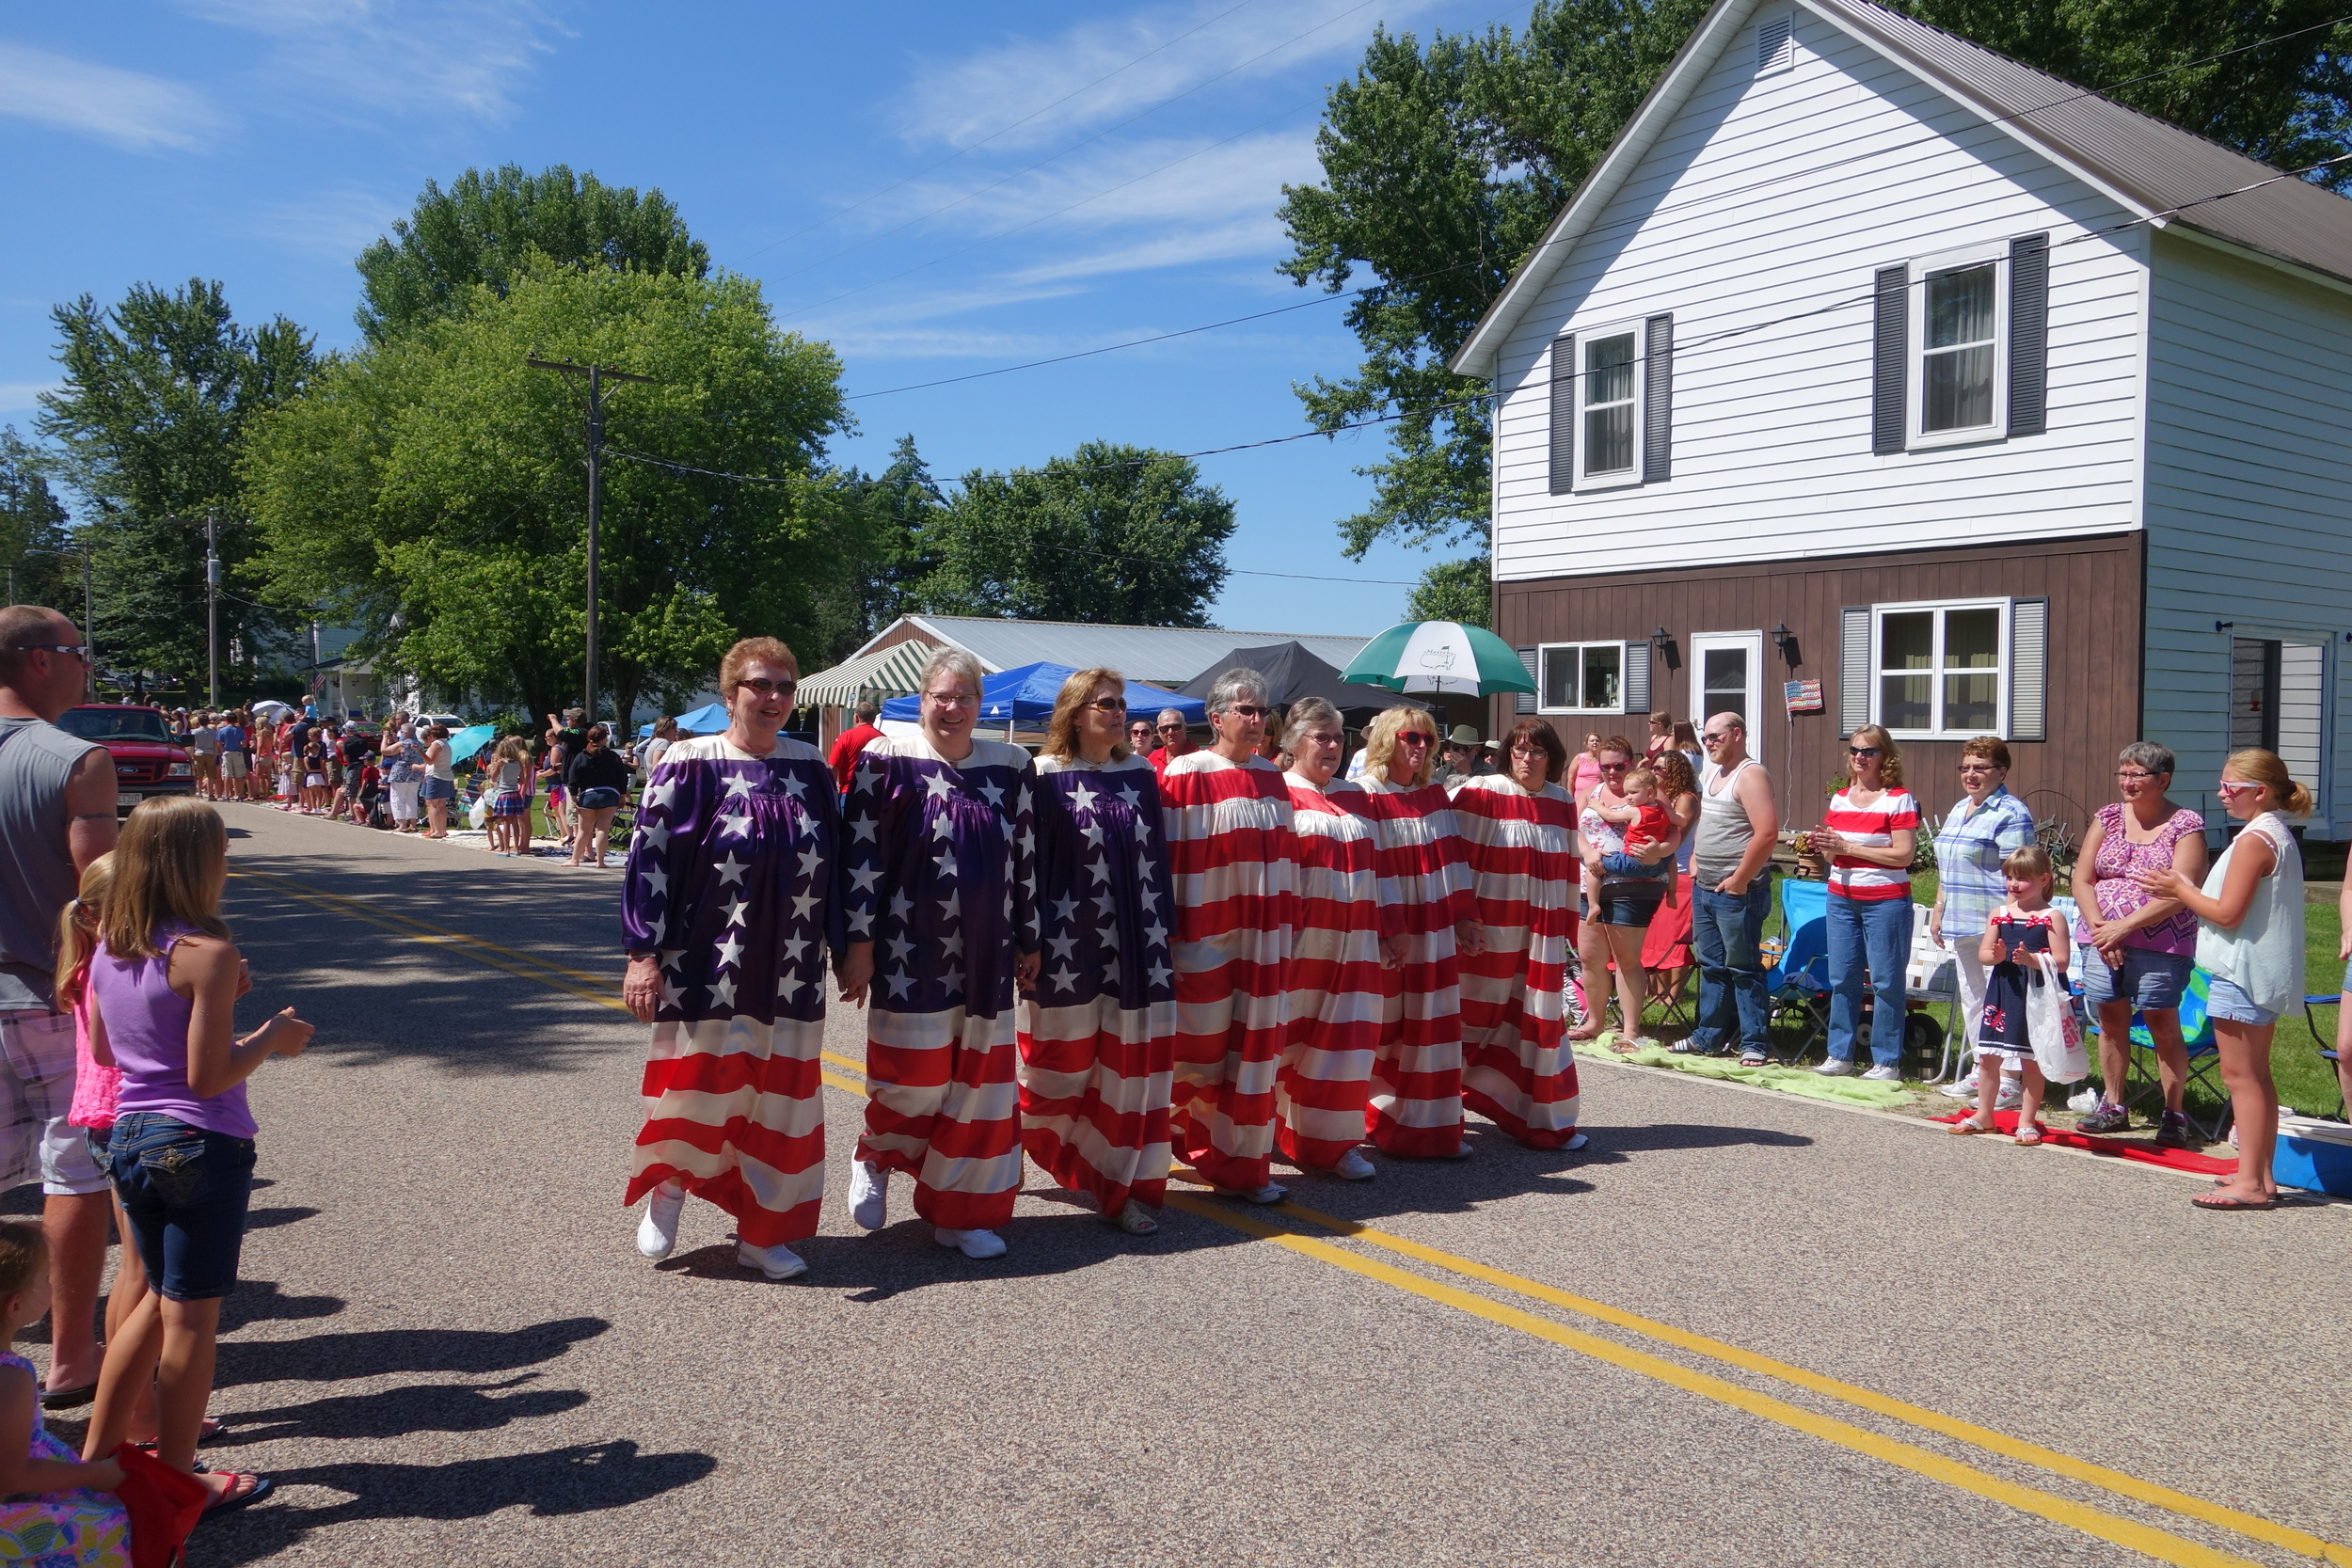 The Living Flag, Witwen Fourth of July Parade